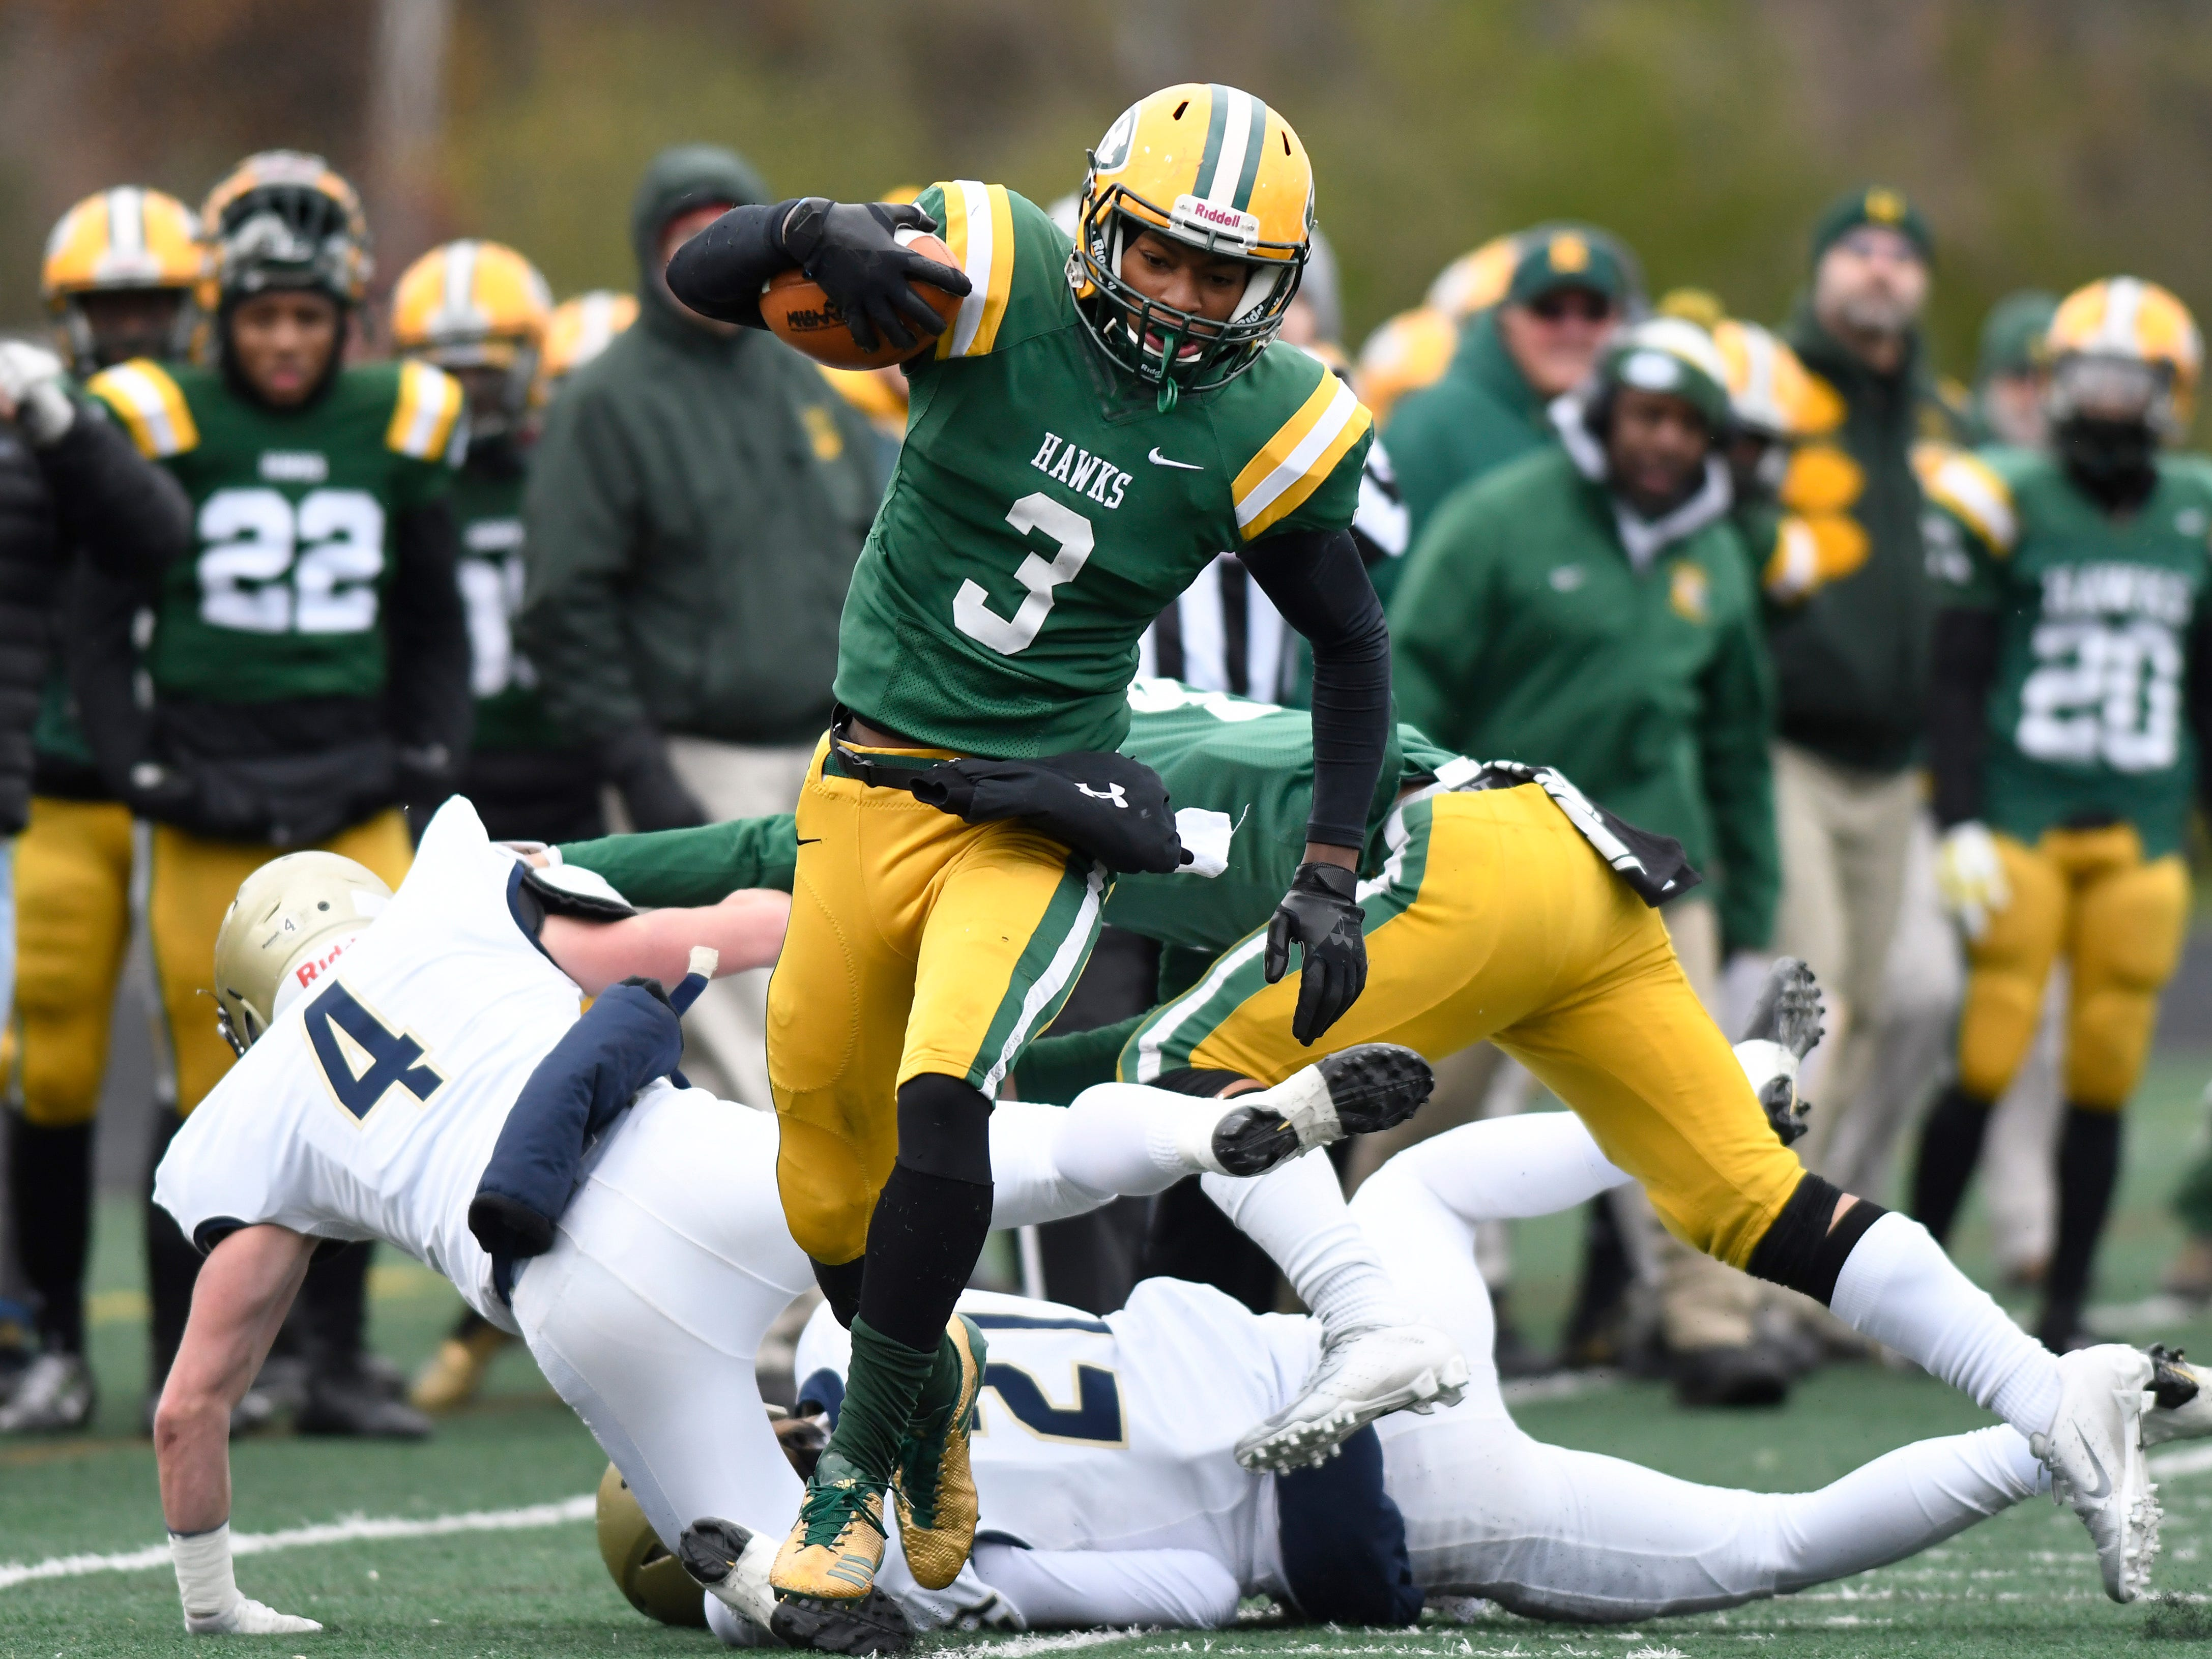 Farmington Hills Harrison running back Roderick Heard runs for a first down against Chelsea during the first quarter, Saturday in a Division 4 Regional Final played at Harrison High School in Farmington Hills.